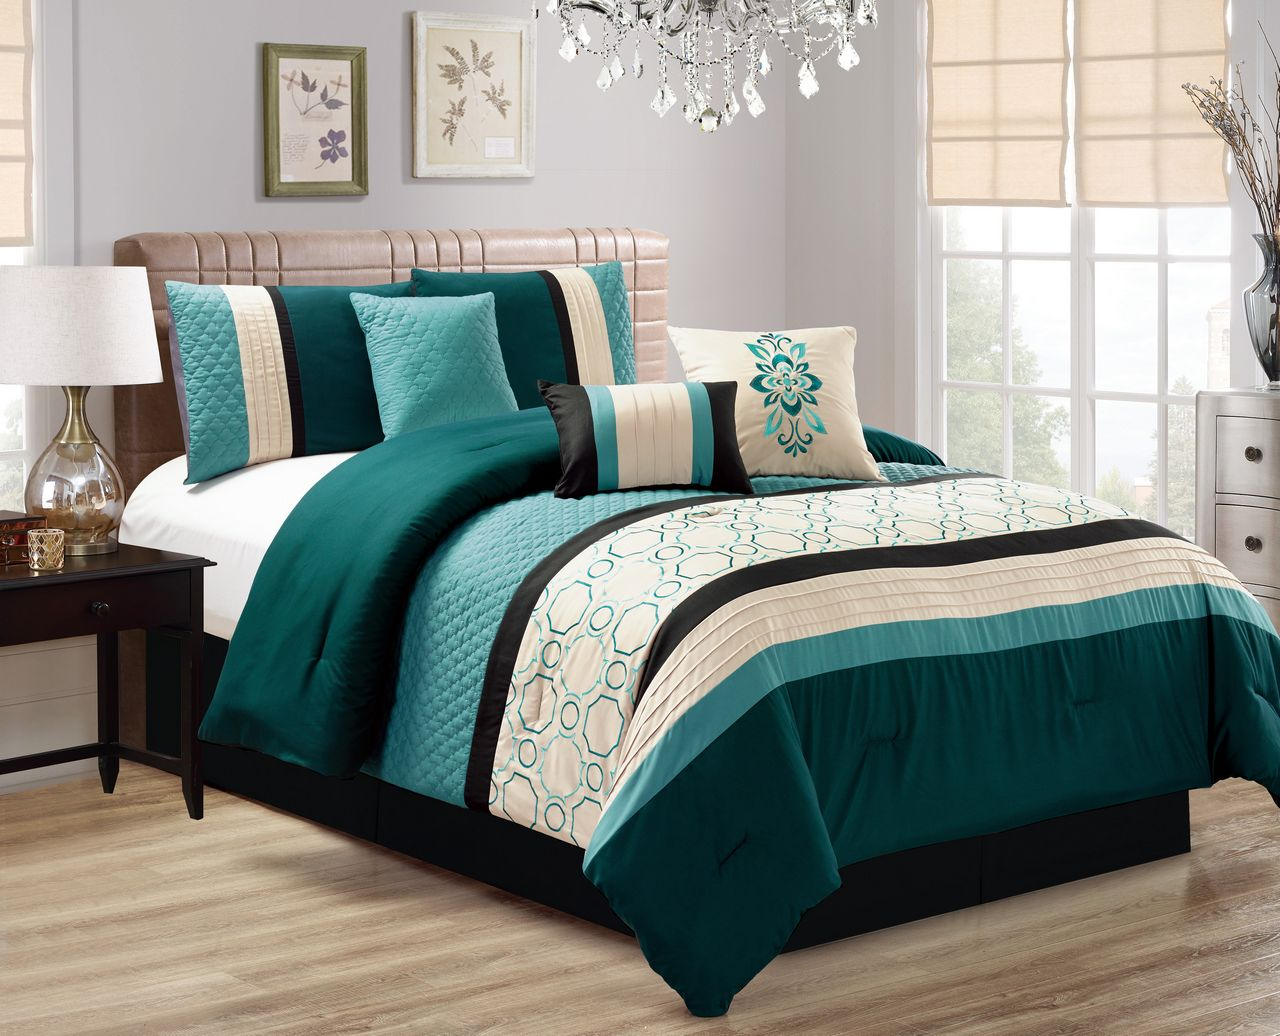 7 Piece Quilted Geometric Embroidered Teal Ivory Black